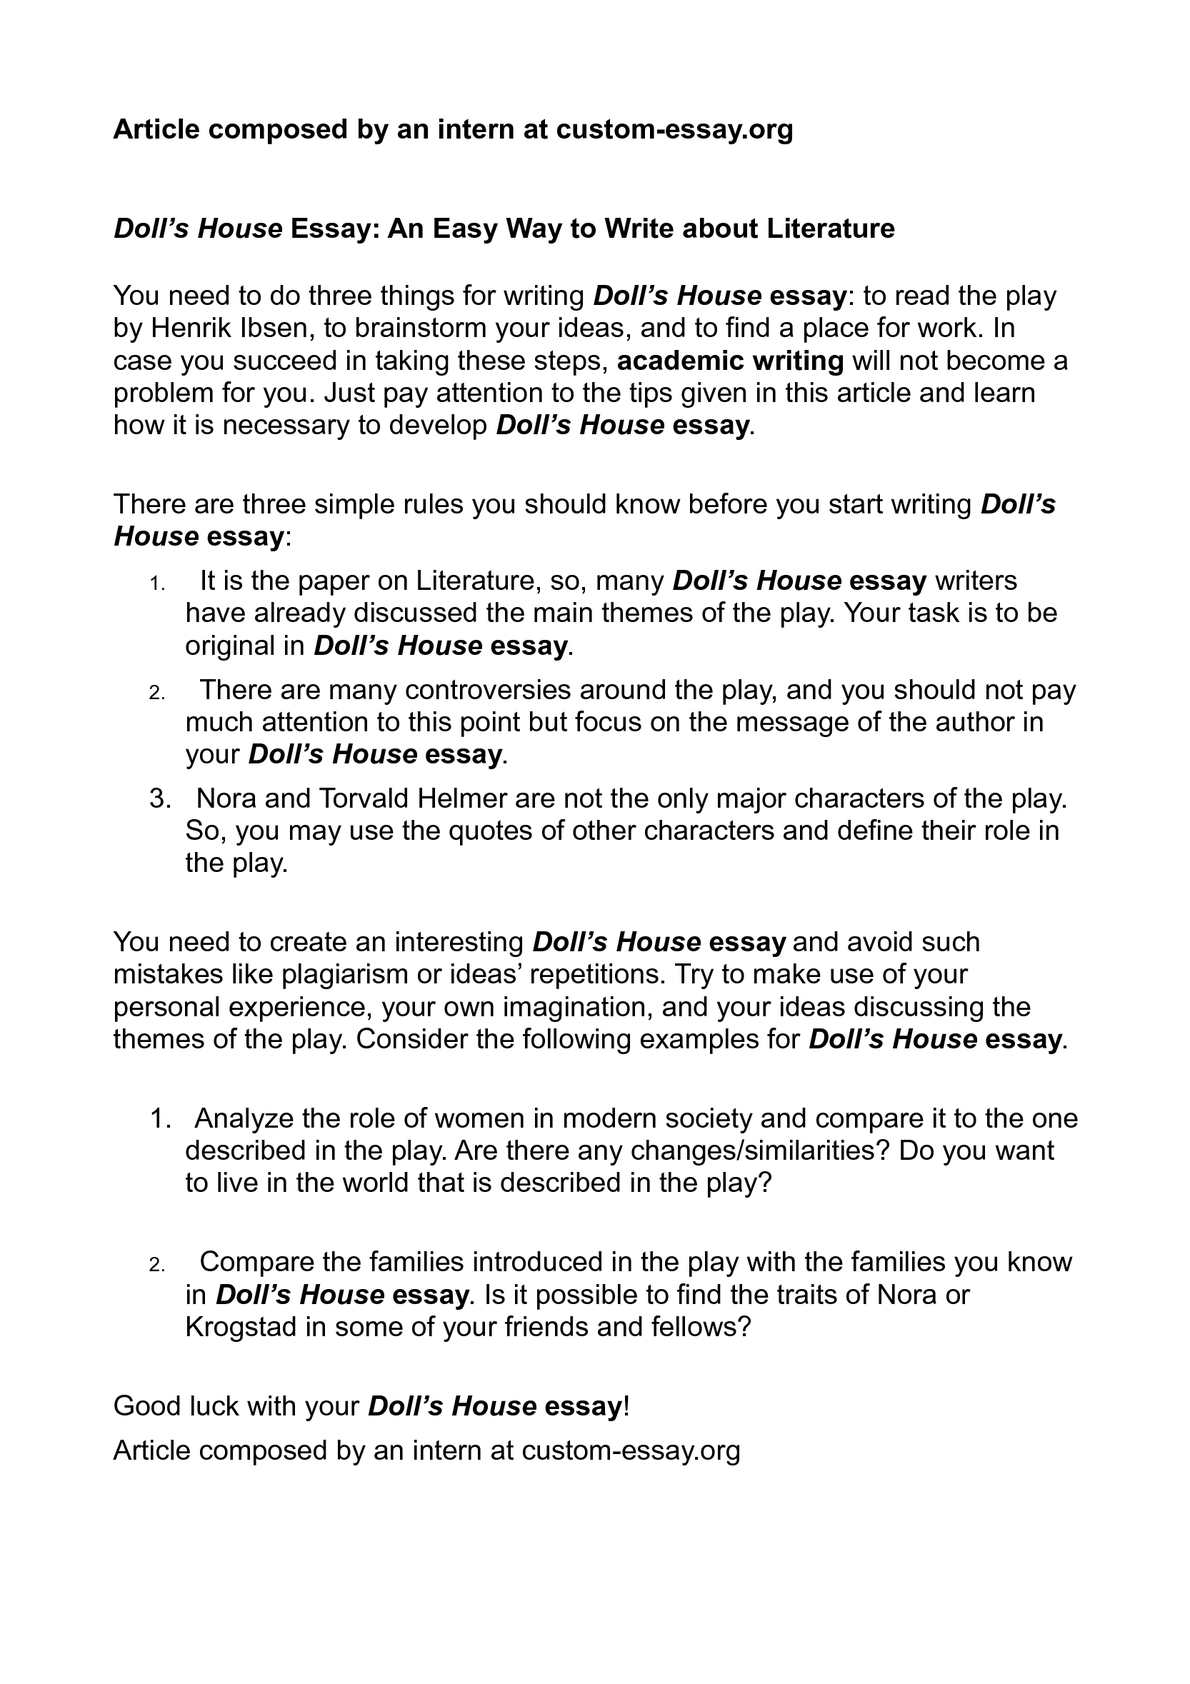 doll s house essay an easy way to write about literature